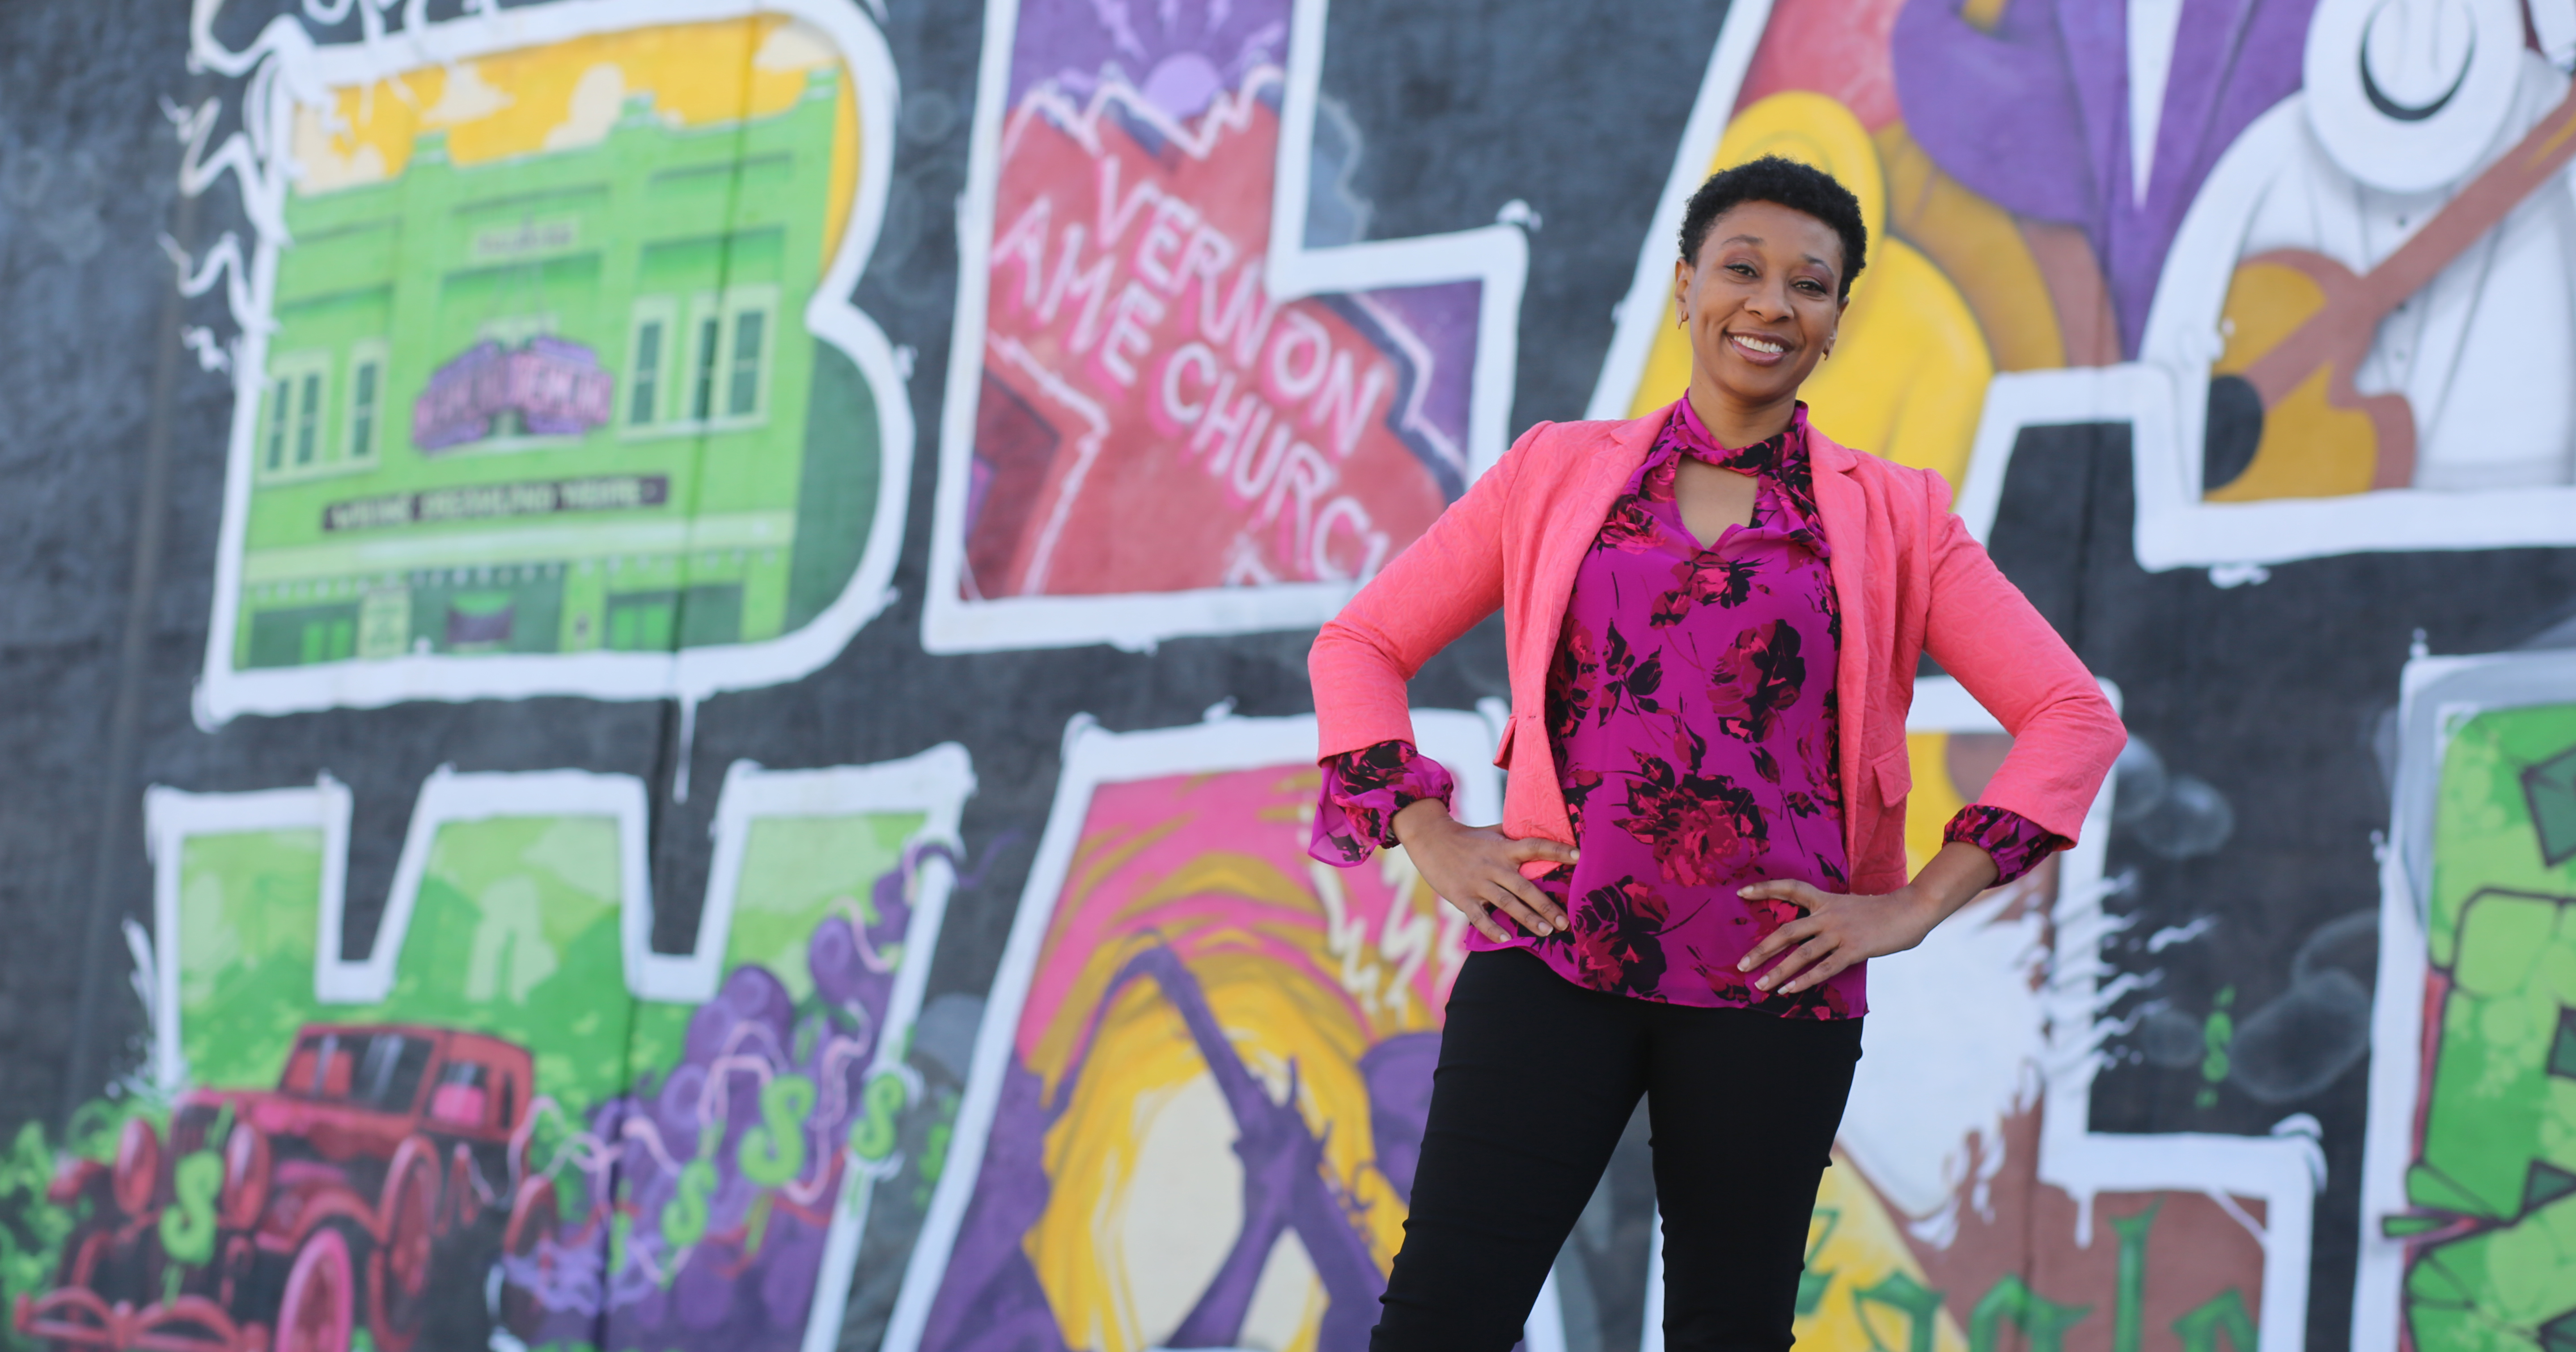 Statewide activist and public speaker D'Marria Monday poses for a photo in Tulsa's historic Greenwood District.